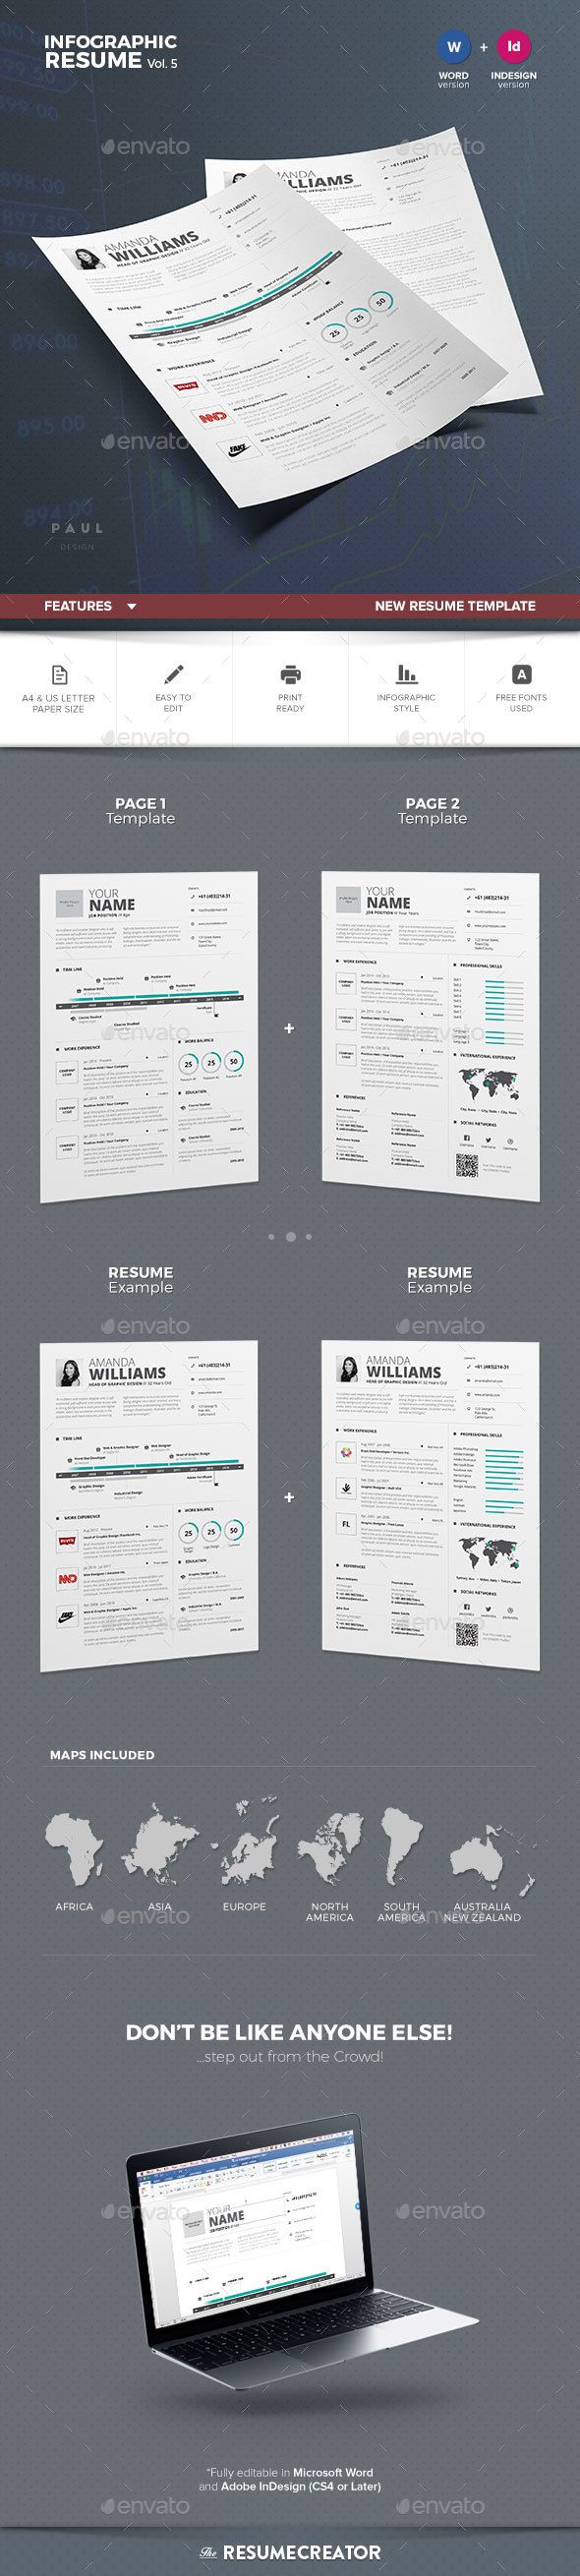 Famous Edit My Resume Jobstreet Pictures Inspiration Examples